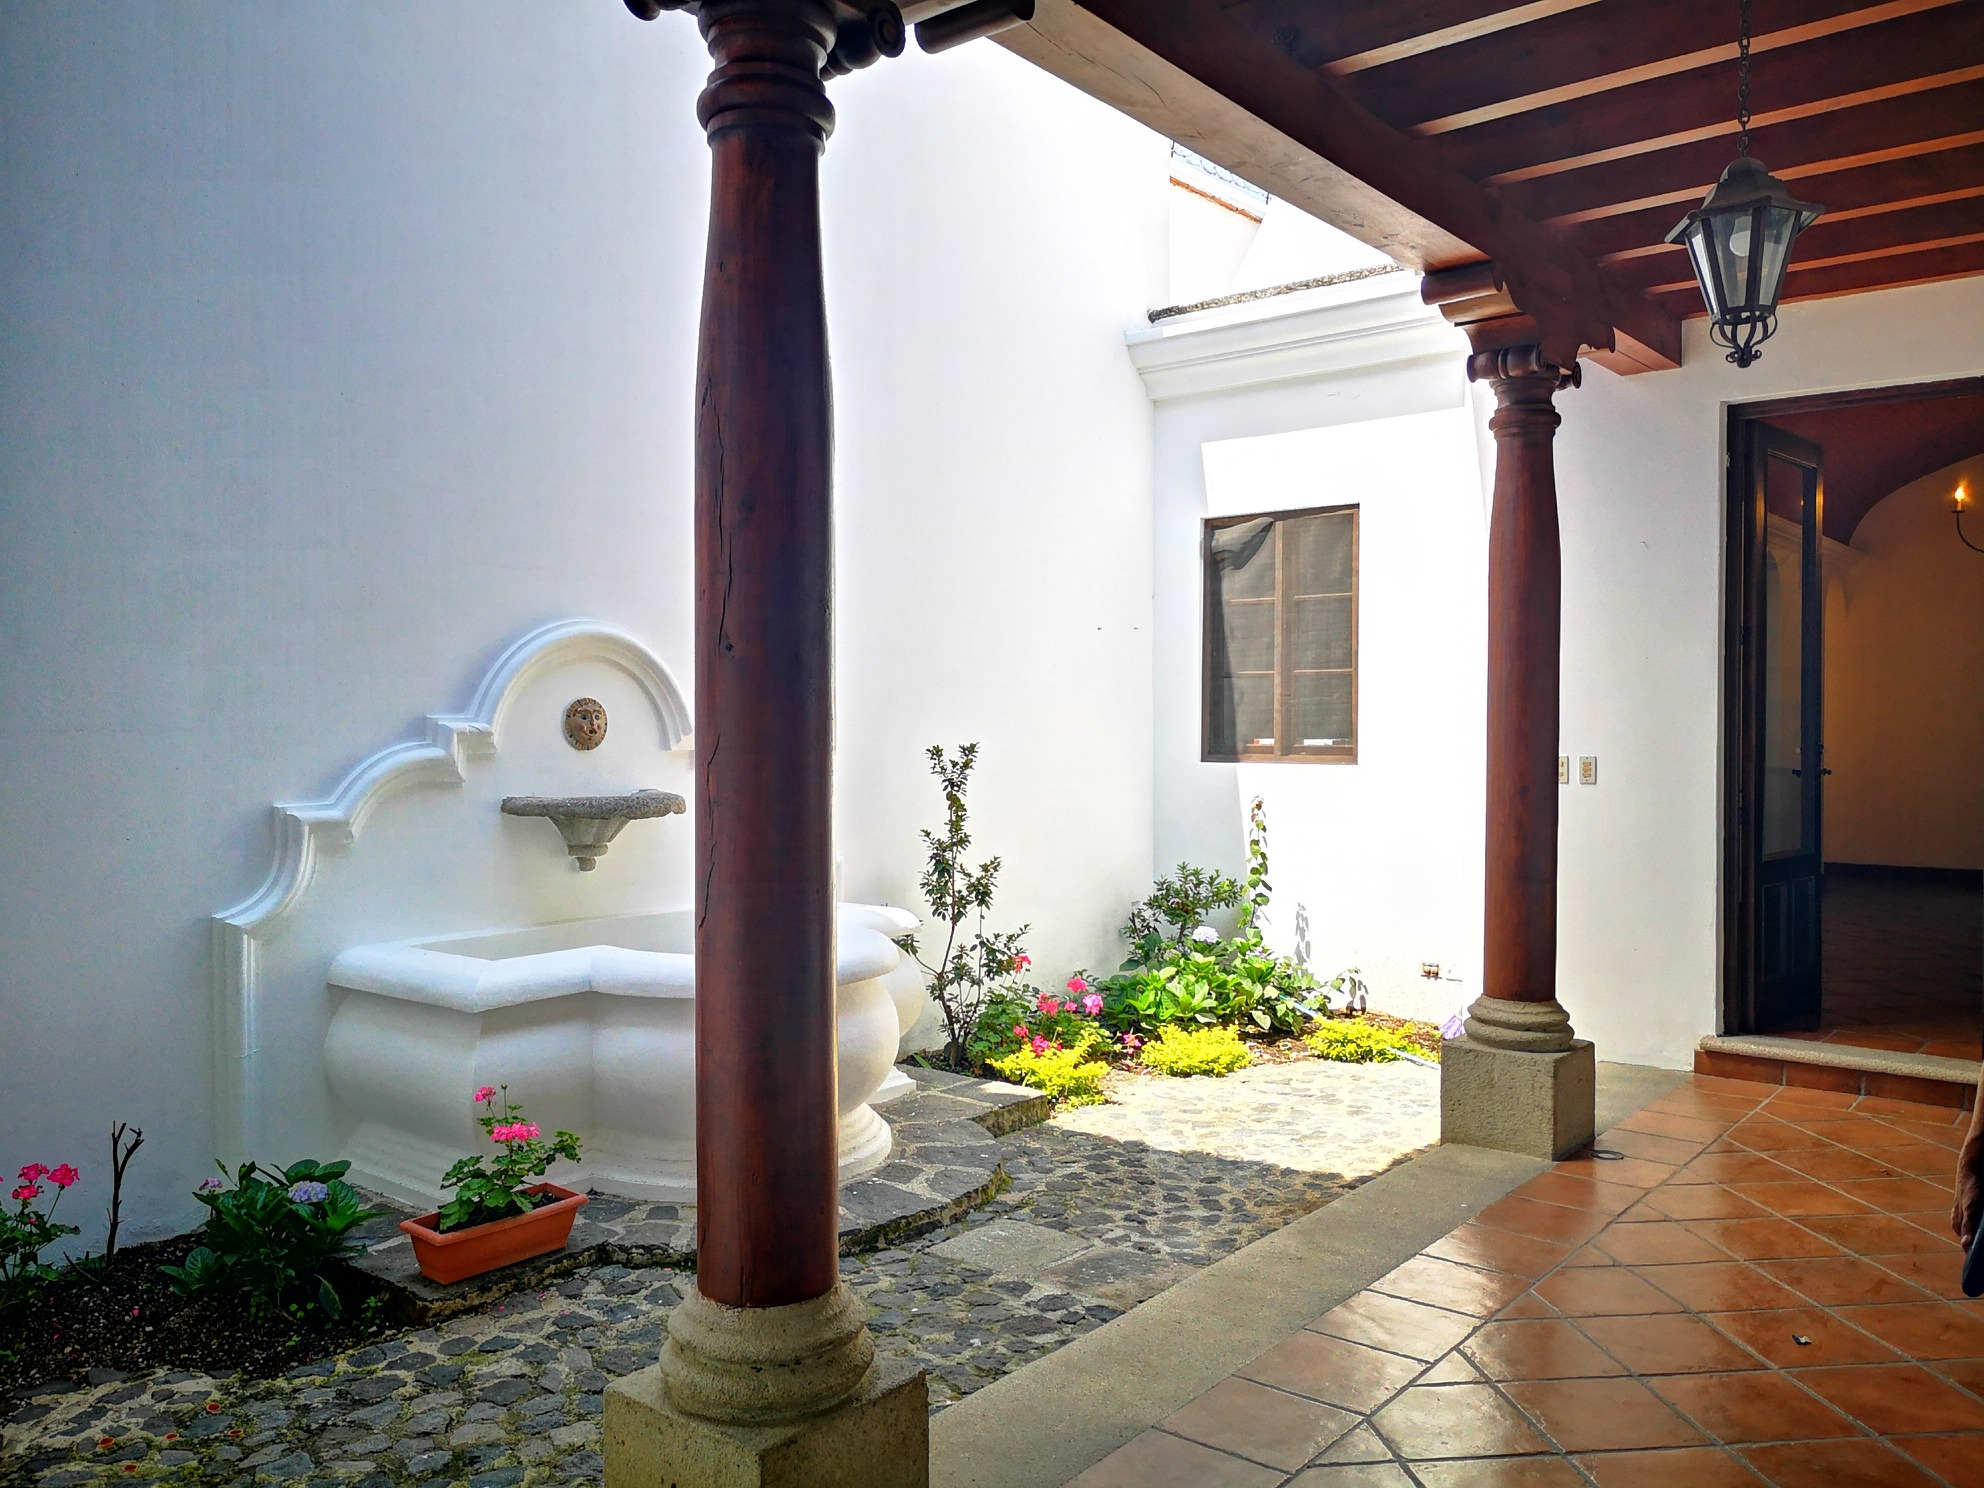 3880 NICE APARTAMENT FOR RENT A FEW BLOCKS FROM THE CENTRAL PARK – ANTIGUA GUATEMALA